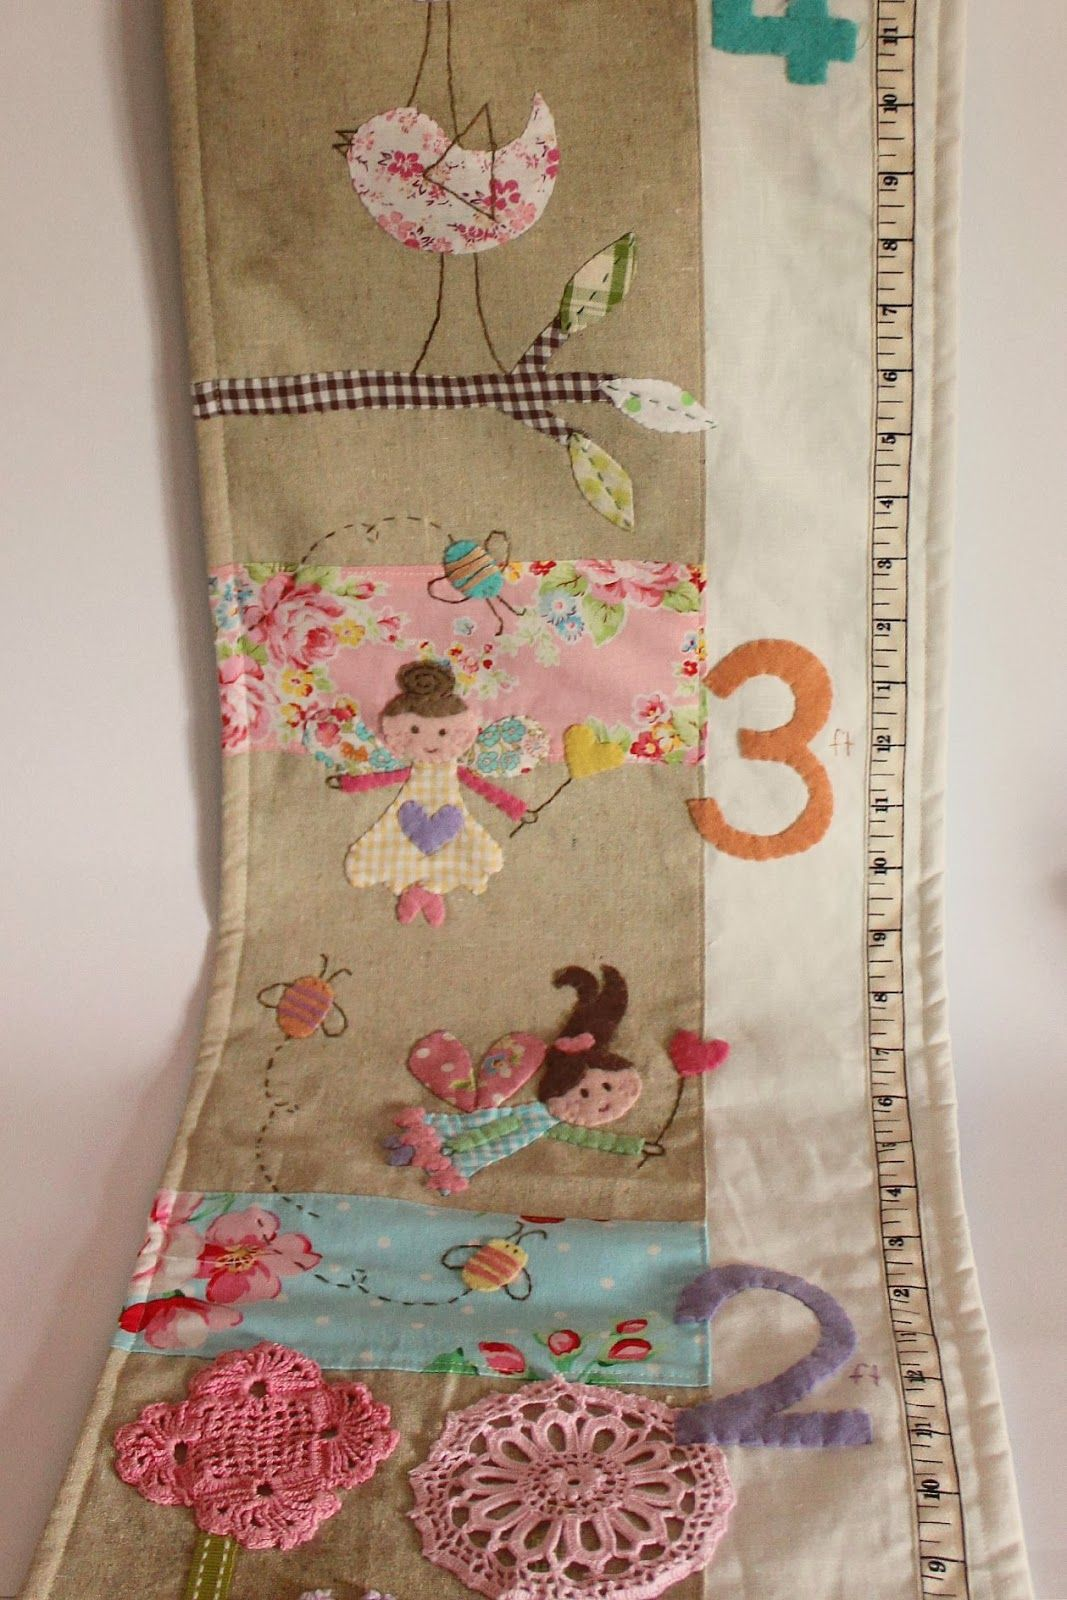 Roxy creations latest growth charts growth chart pinterest roxy creations latest growth charts geenschuldenfo Images